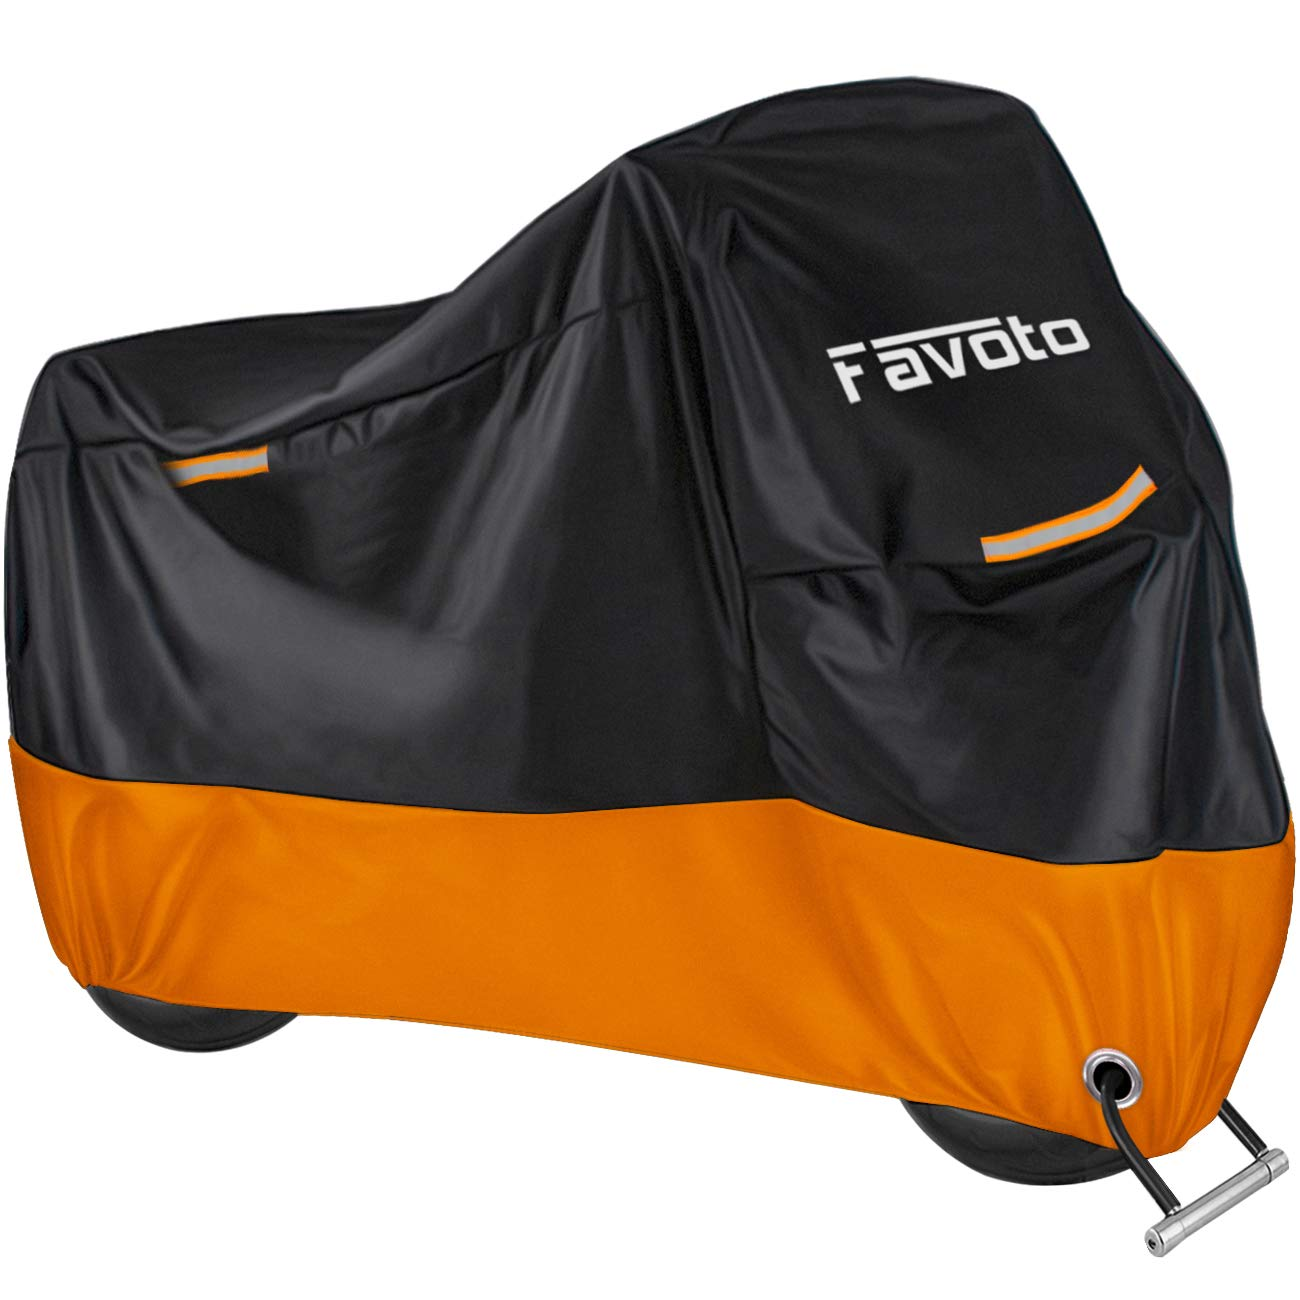 """Favoto Motorcycle Cover All Season Universal Weather Premium Quality Waterproof Windproof Outdoor Durable Night Reflective with Lock-Holes & Storage Bag Fits up to 96.5"""" Motorcycle Vehicle Cover"""